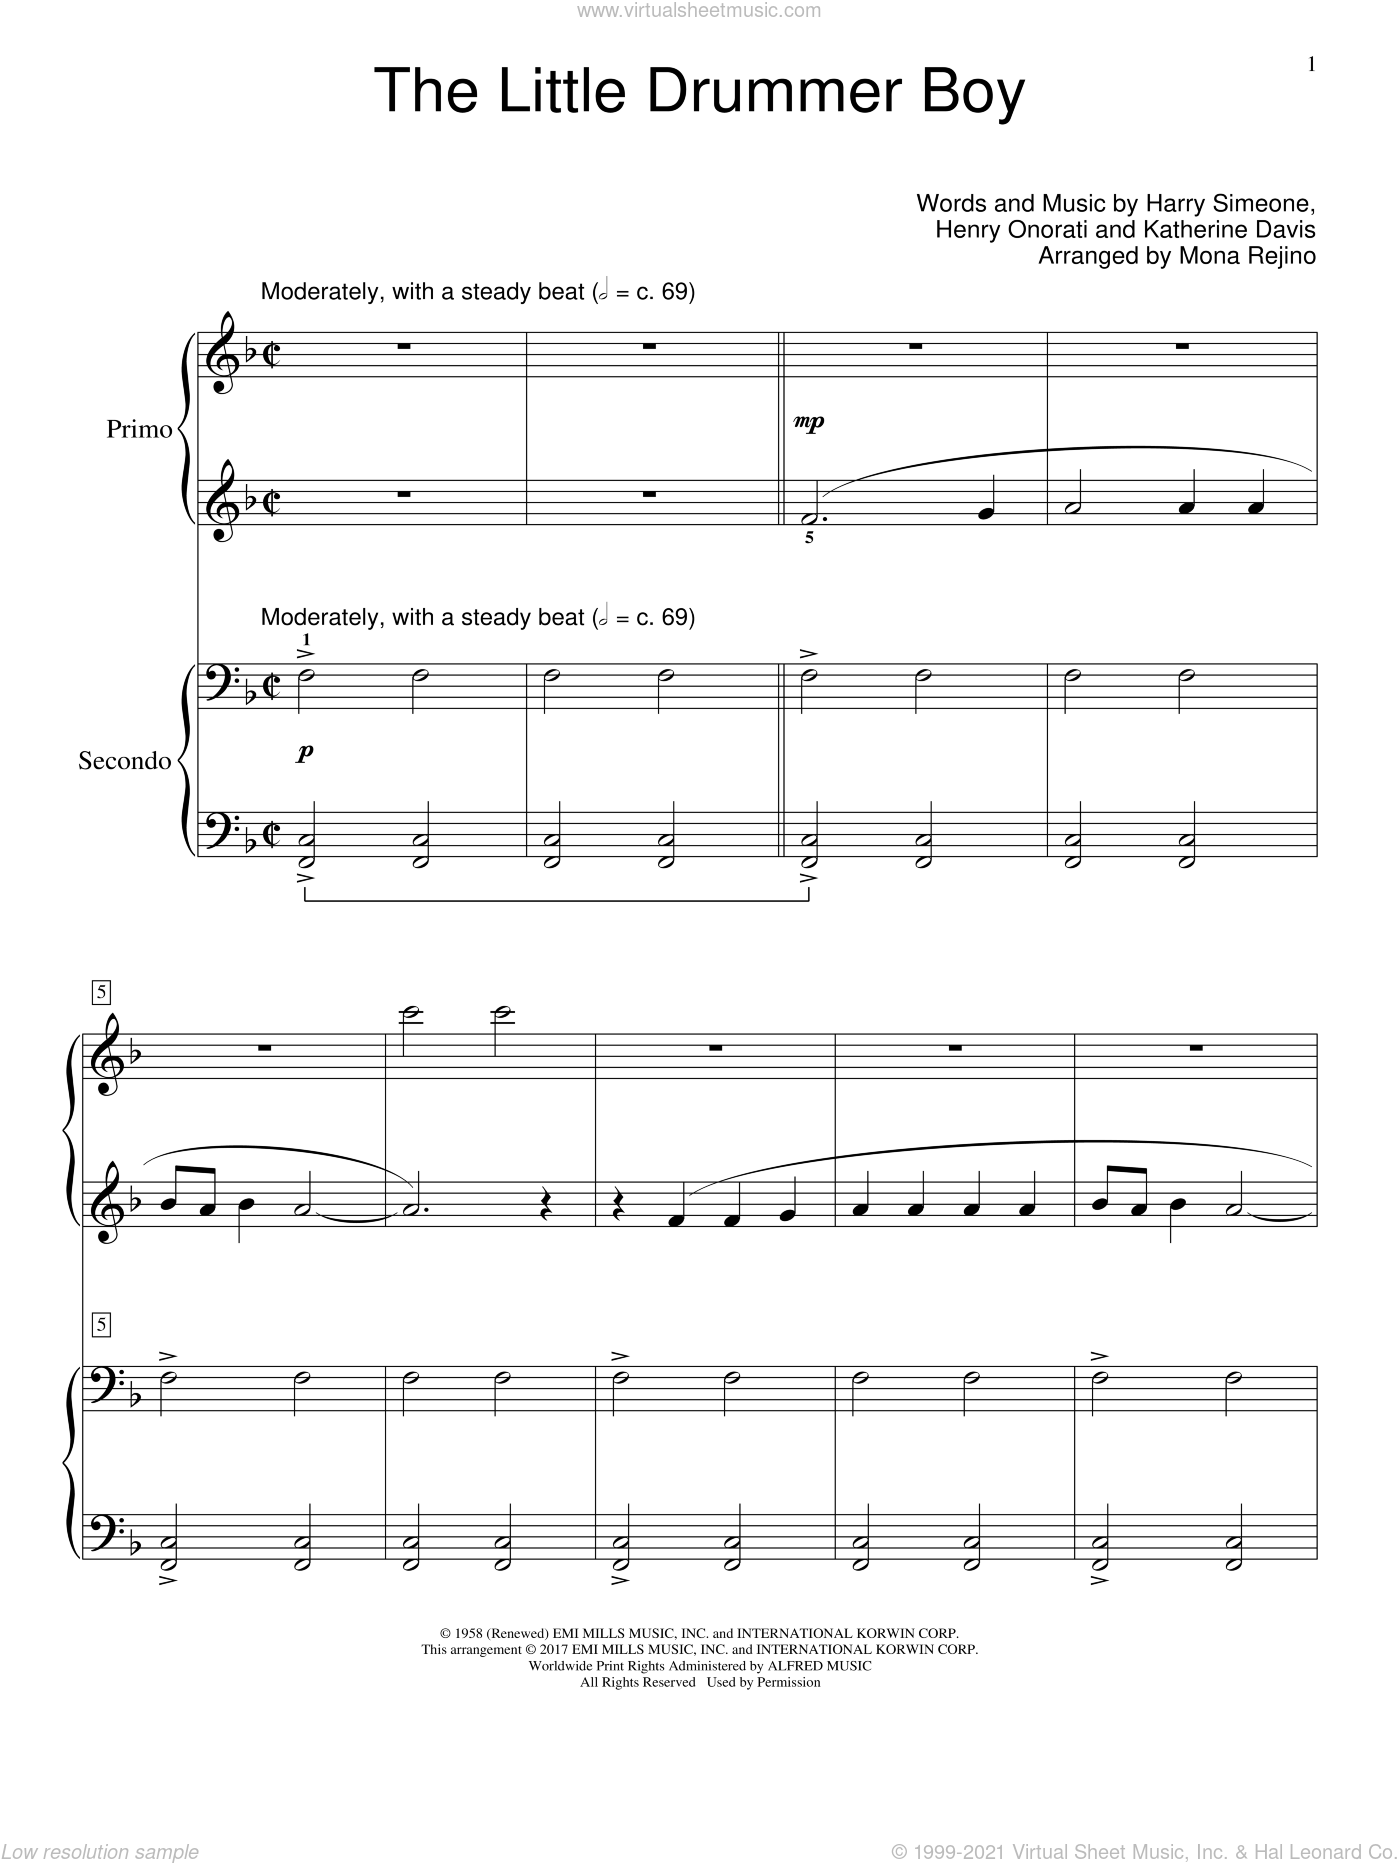 The Little Drummer Boy sheet music for piano four hands by Katherine Davis, Harry Simeone and Henry Onorati, intermediate skill level